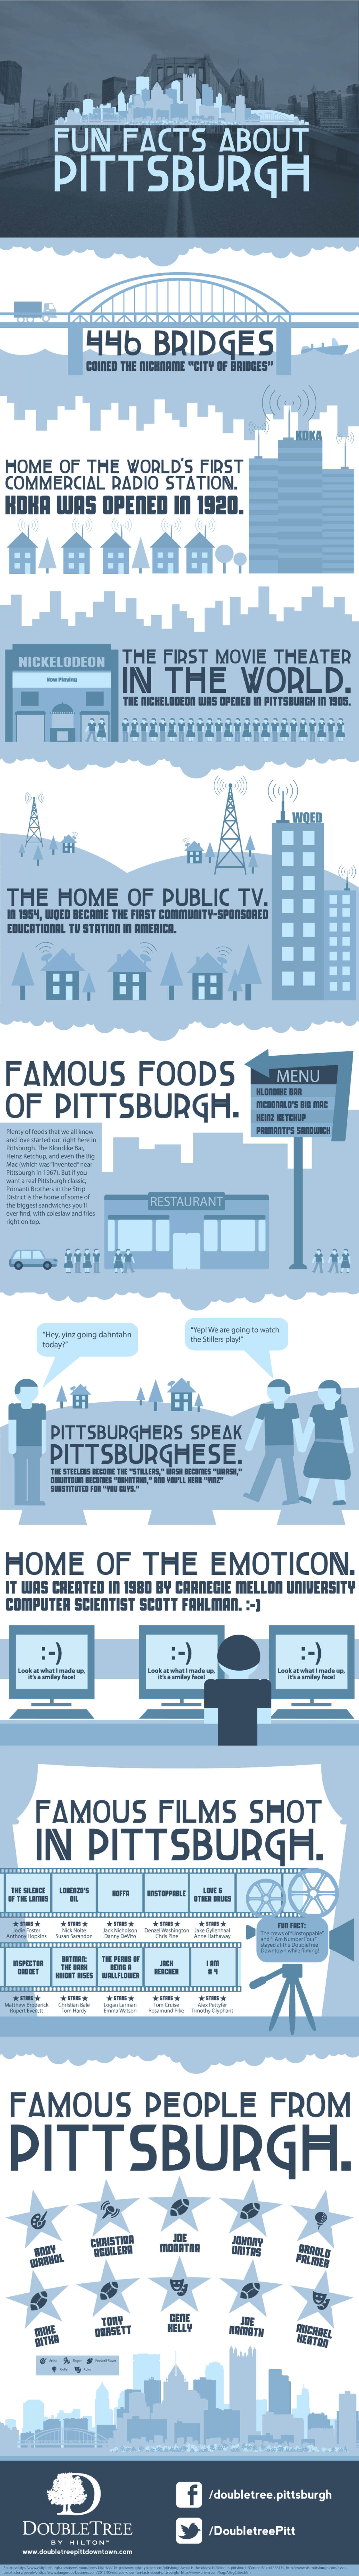 Fun Facts About Pittsburgh Infographic